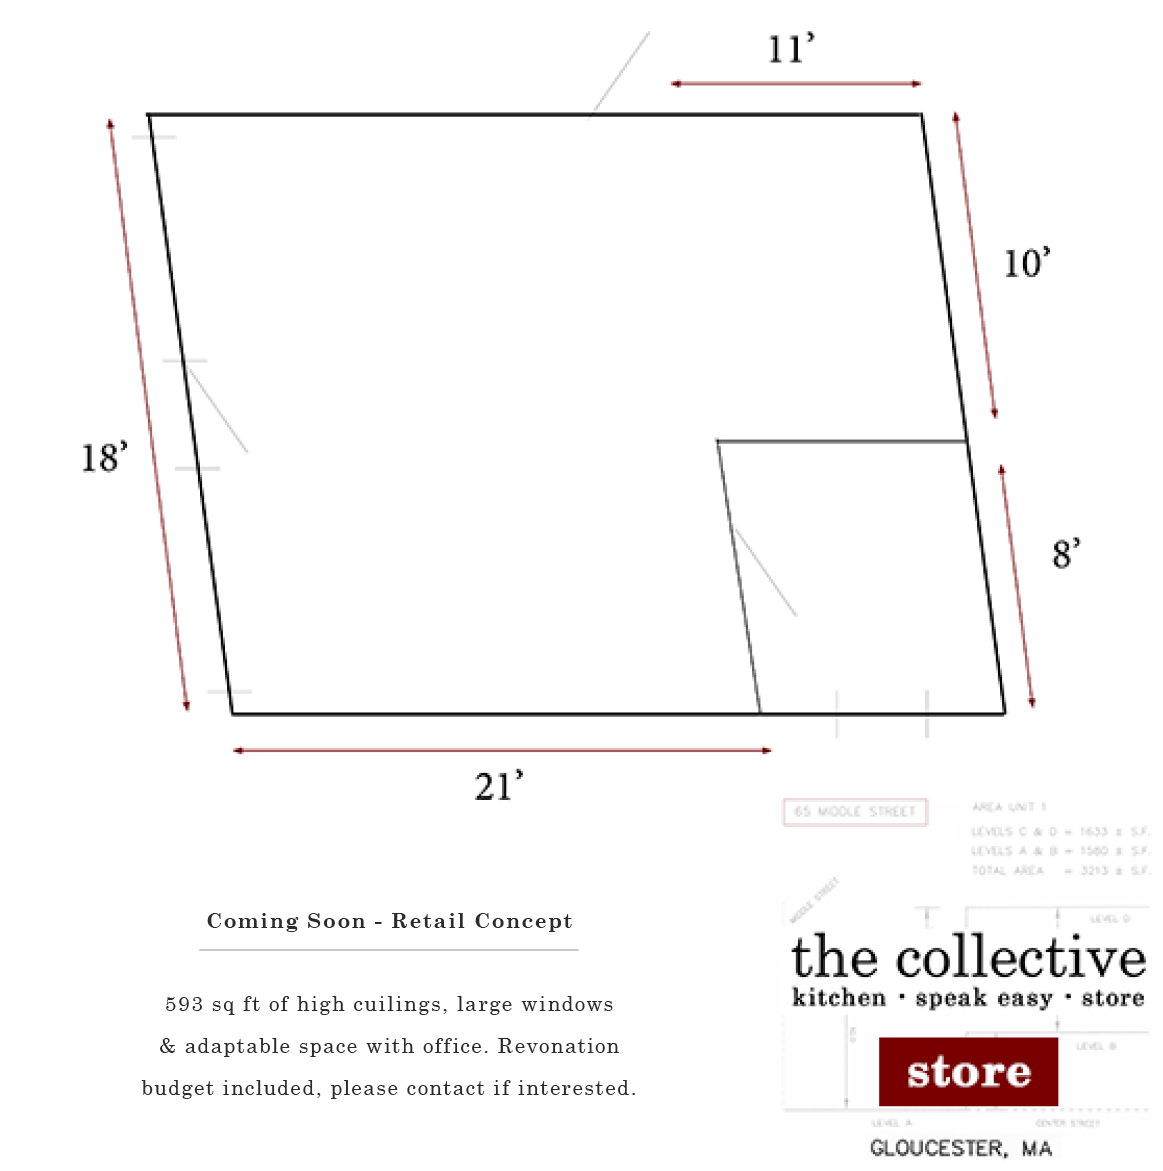 Retail Concept for the collective llc - 2015